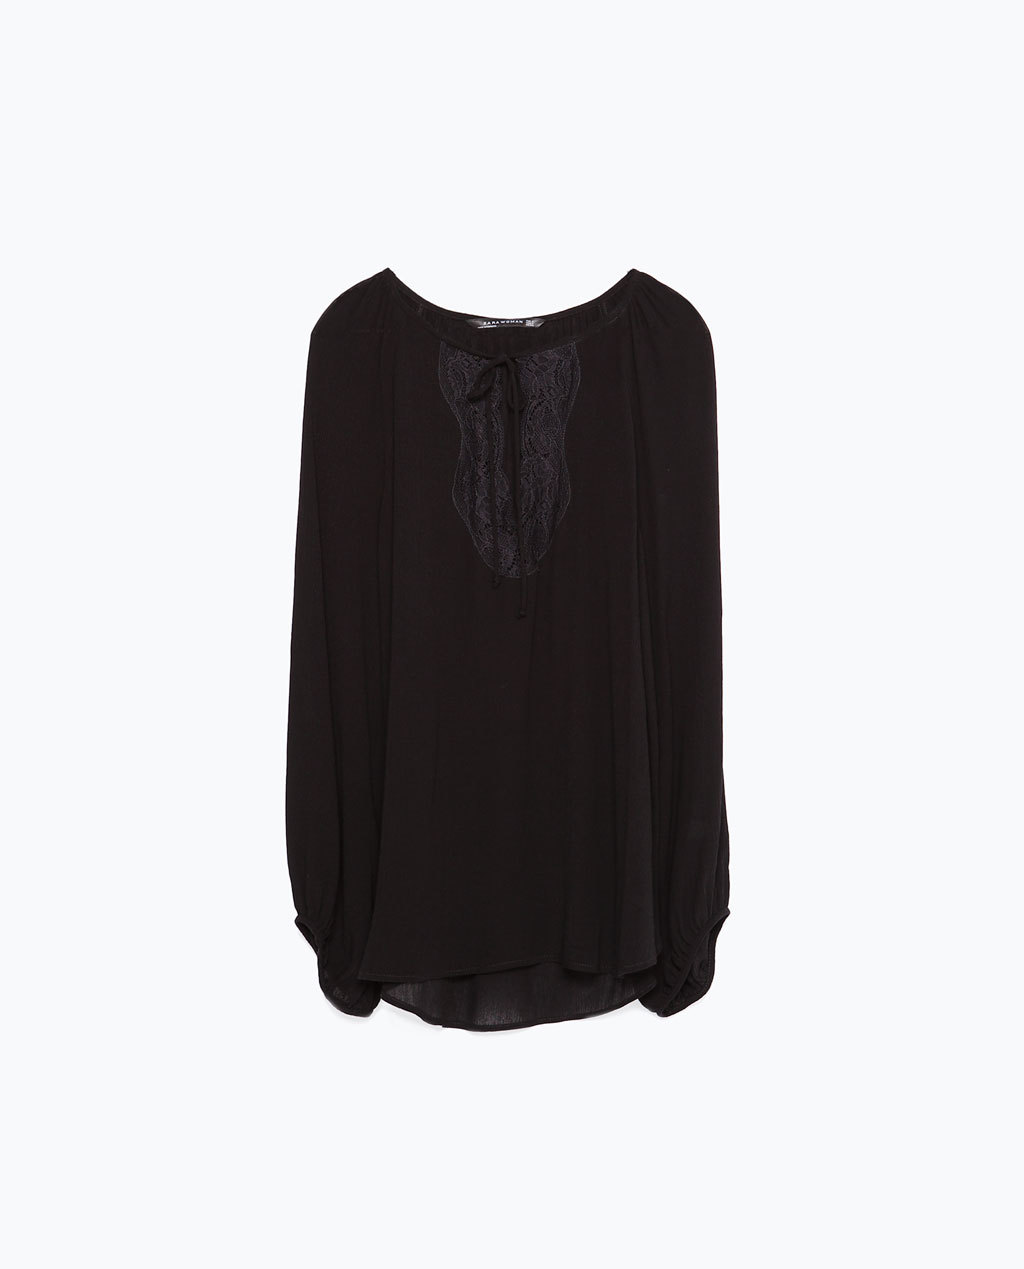 Lace Neckline Blouse - neckline: round neck; pattern: plain; style: blouse; predominant colour: black; occasions: casual, creative work; length: standard; fibres: viscose/rayon - 100%; fit: loose; sleeve length: long sleeve; sleeve style: standard; pattern type: fabric; texture group: woven light midweight; embellishment: lace; season: a/w 2015; wardrobe: highlight